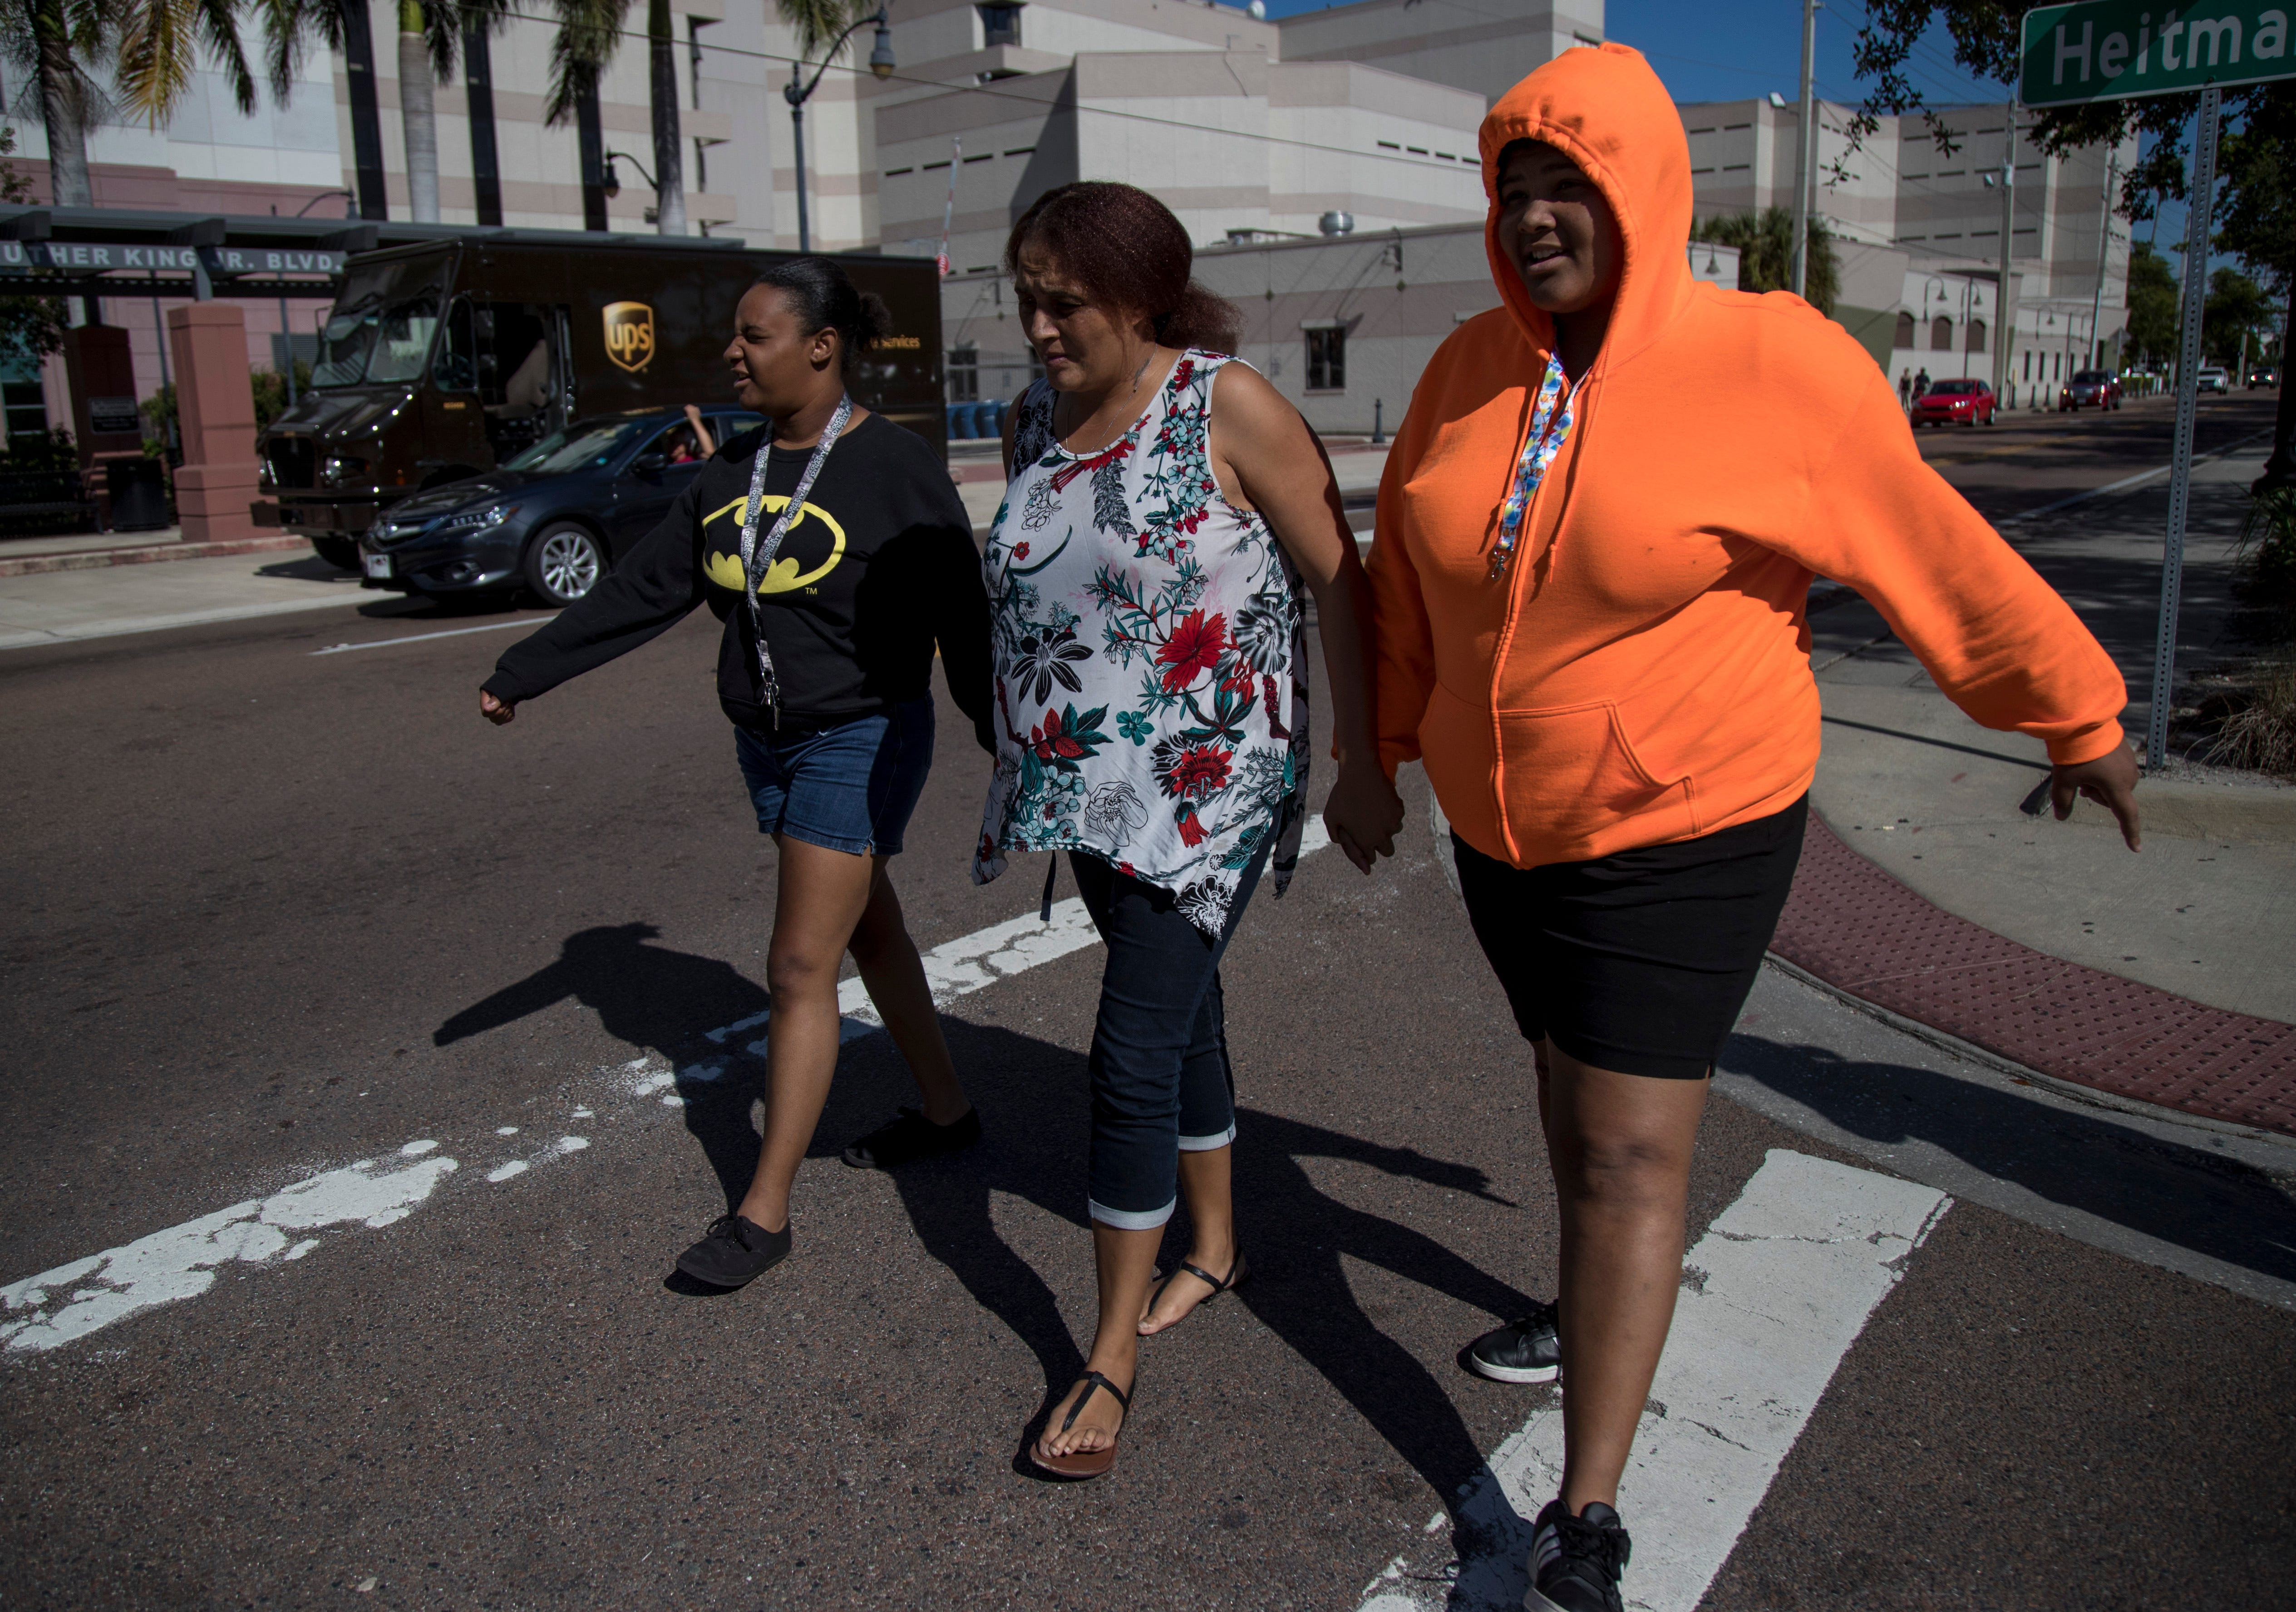 Dawn Hoshor and her daughters Kourtney, left, and Anber walk toward the courthouse hoping that Anber will be able to come home on Nov. 21, 2019. The next morning they got the news that the magistrate would allow Anber to be reunified with her mom until her 18th birthday in December.